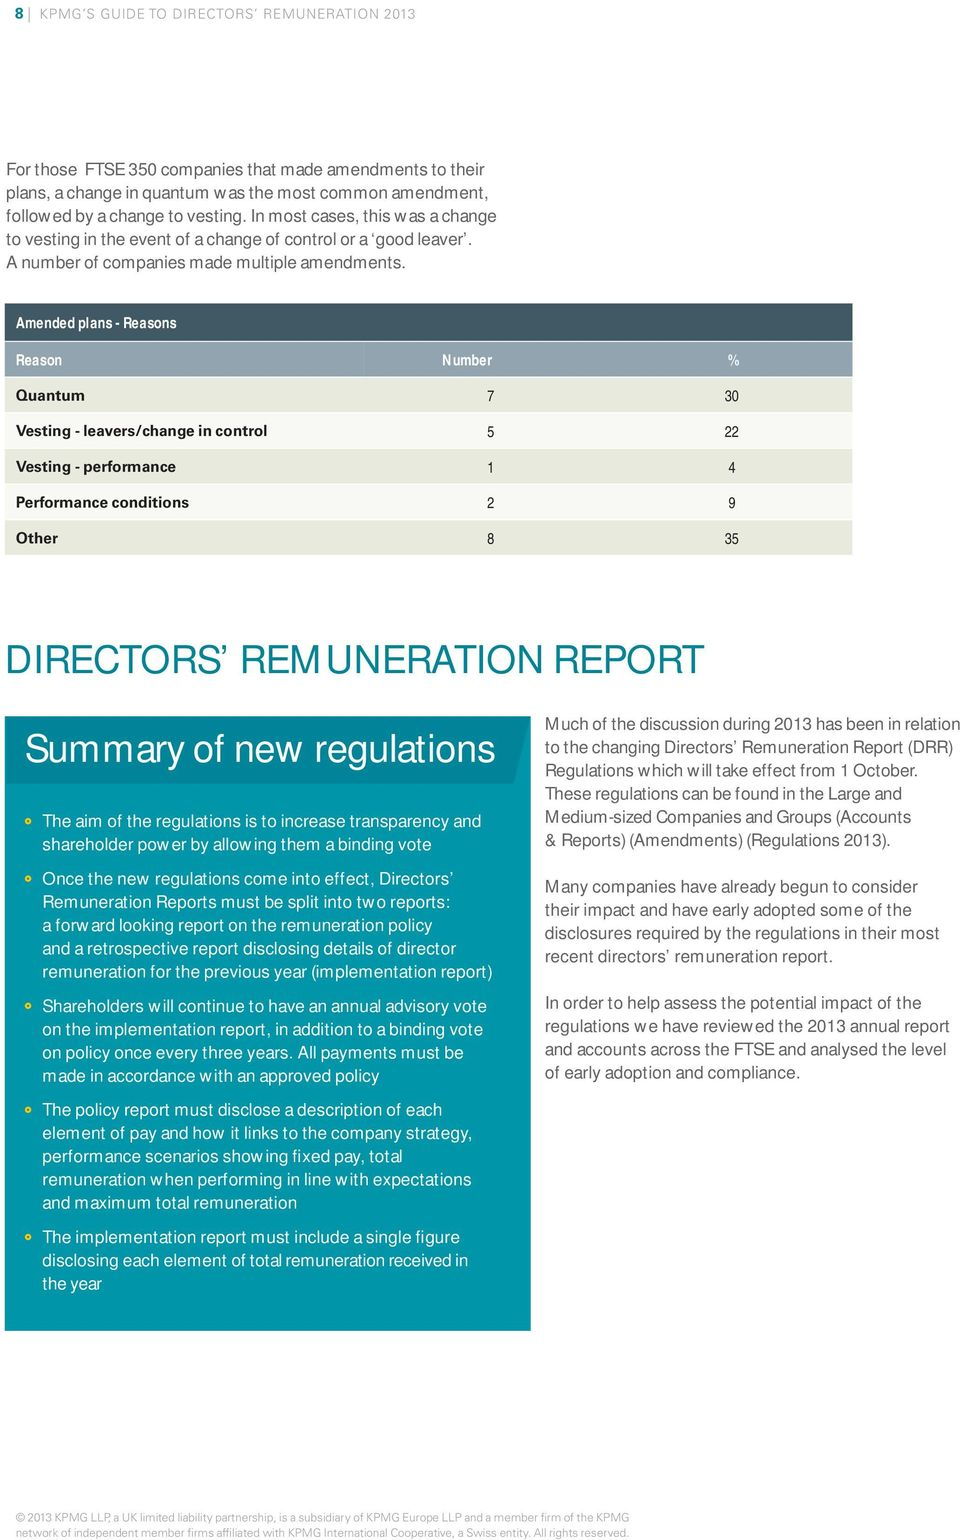 Amended plans - Reasons Reason Number % Quantum 7 30 Vesting - leavers/change in control 5 22 Vesting - performance 1 4 Performance conditions 2 9 Other 8 35 DIRECTORS REMUNERATION REPORT Summary of